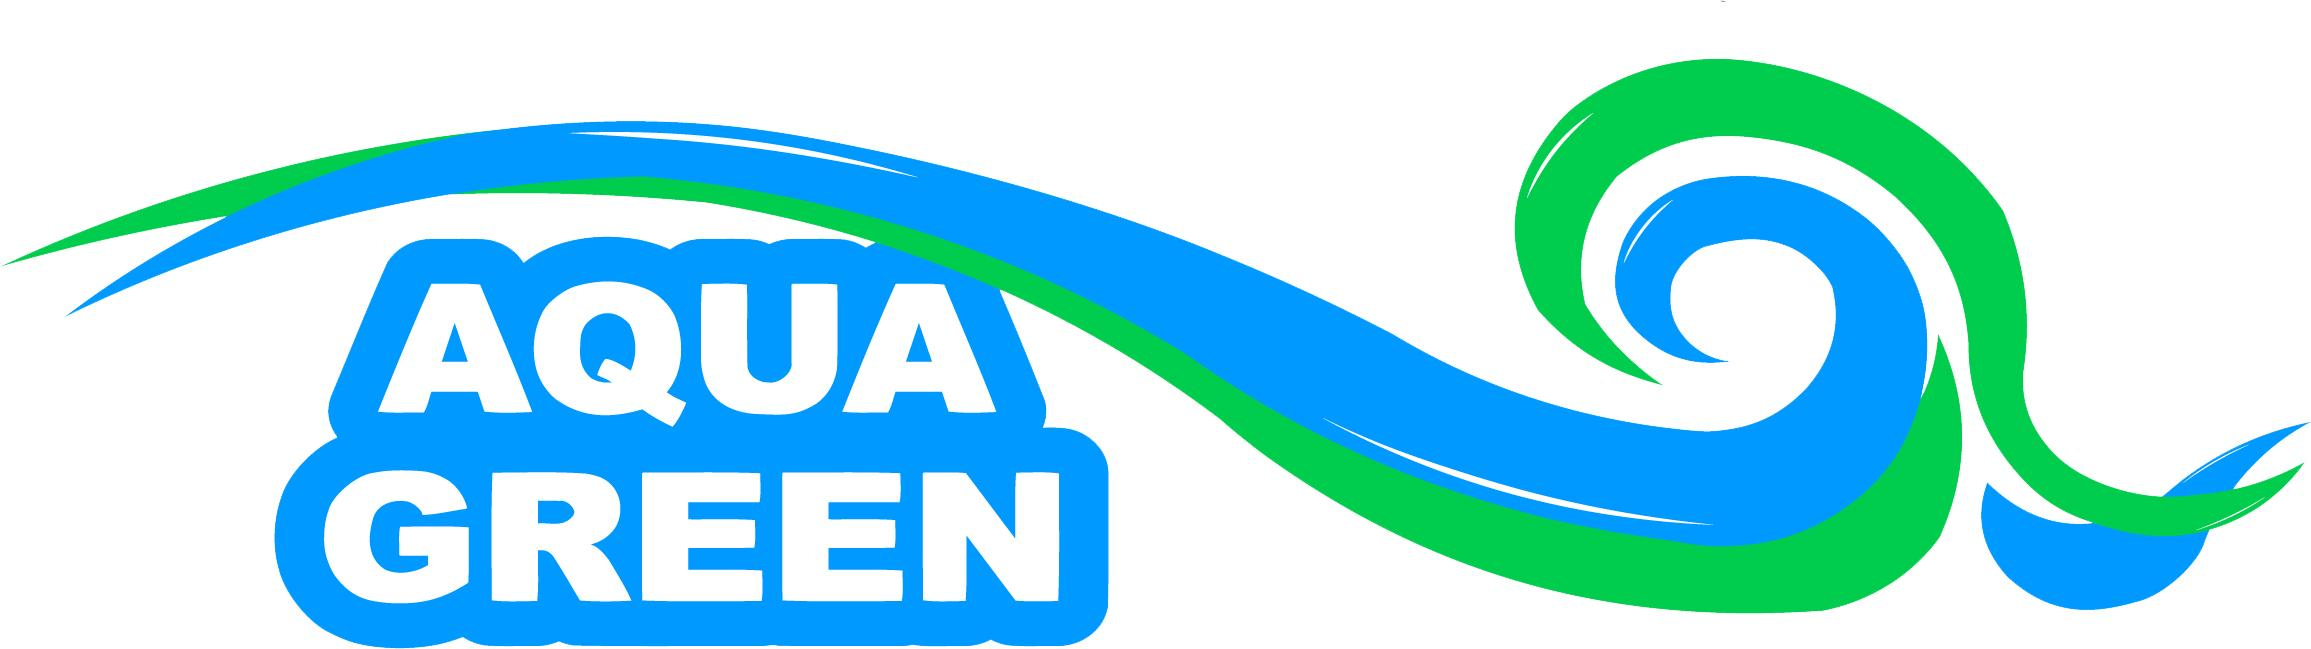 aquagreen logo_1_42